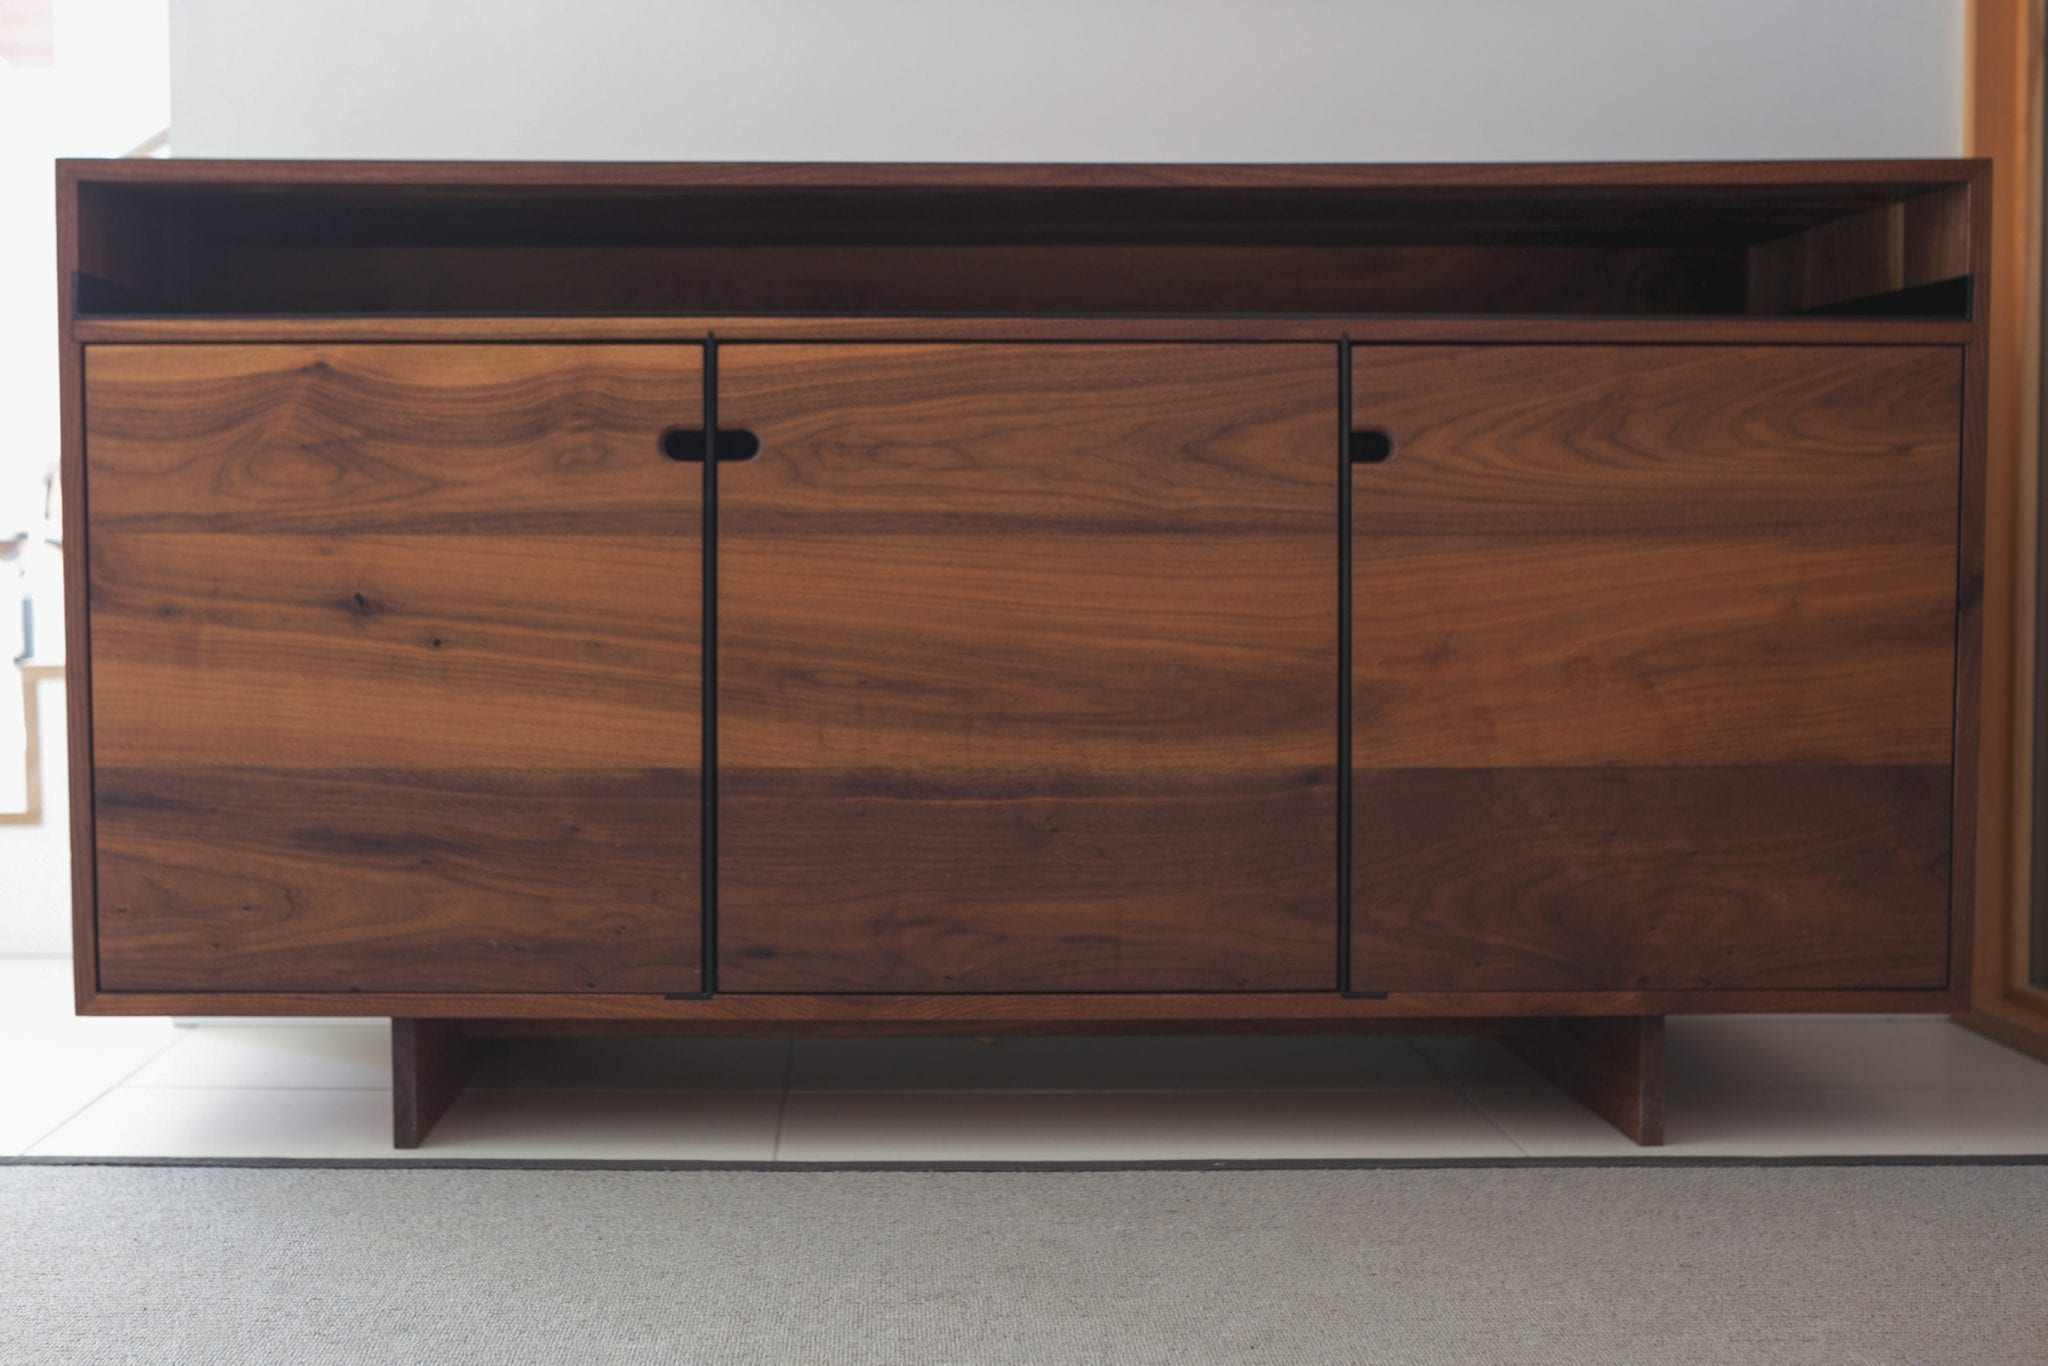 Design-Built Custom Furniture - Credenza